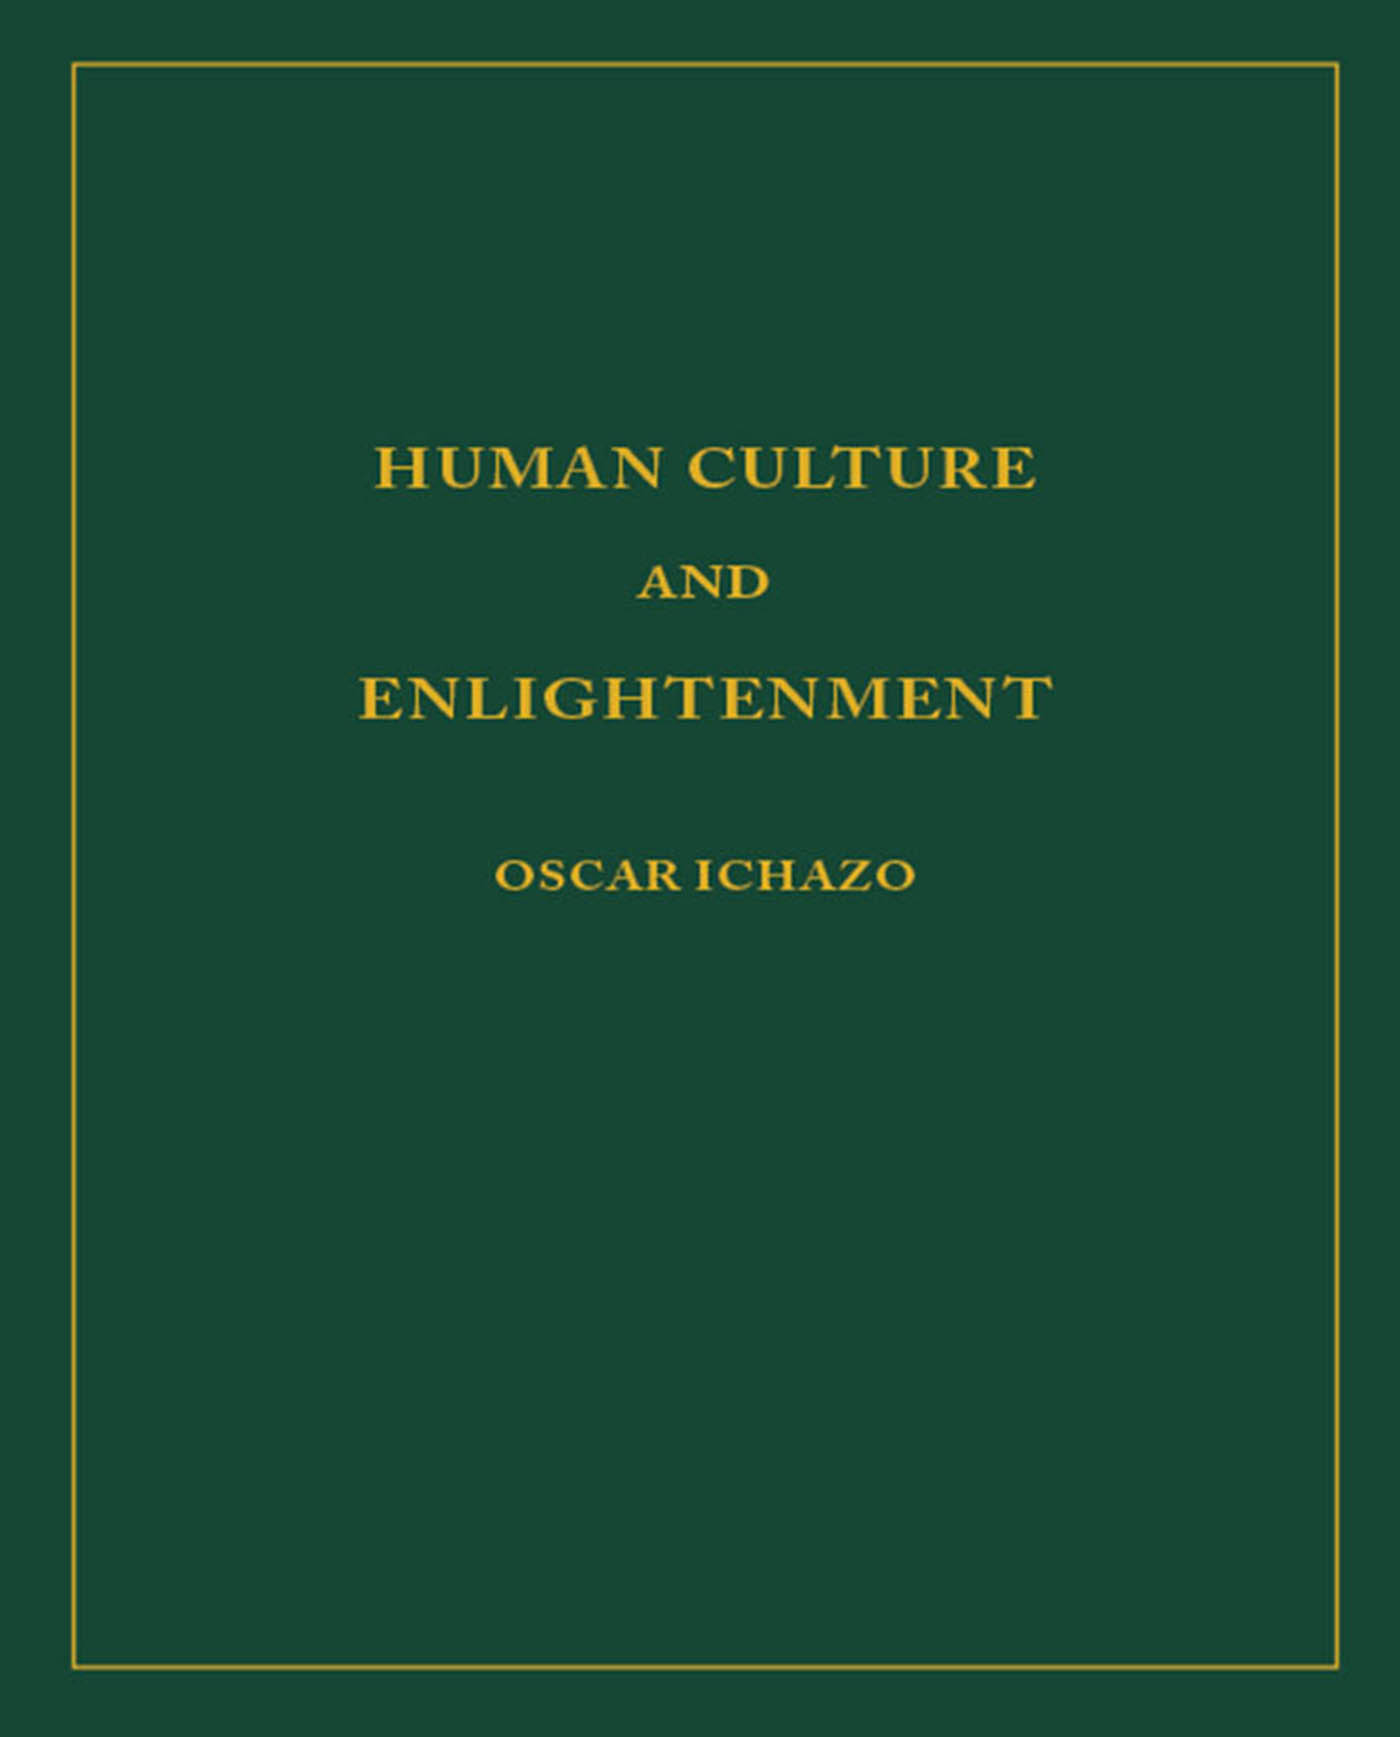 Human Culture and Enlightenment on Kindle